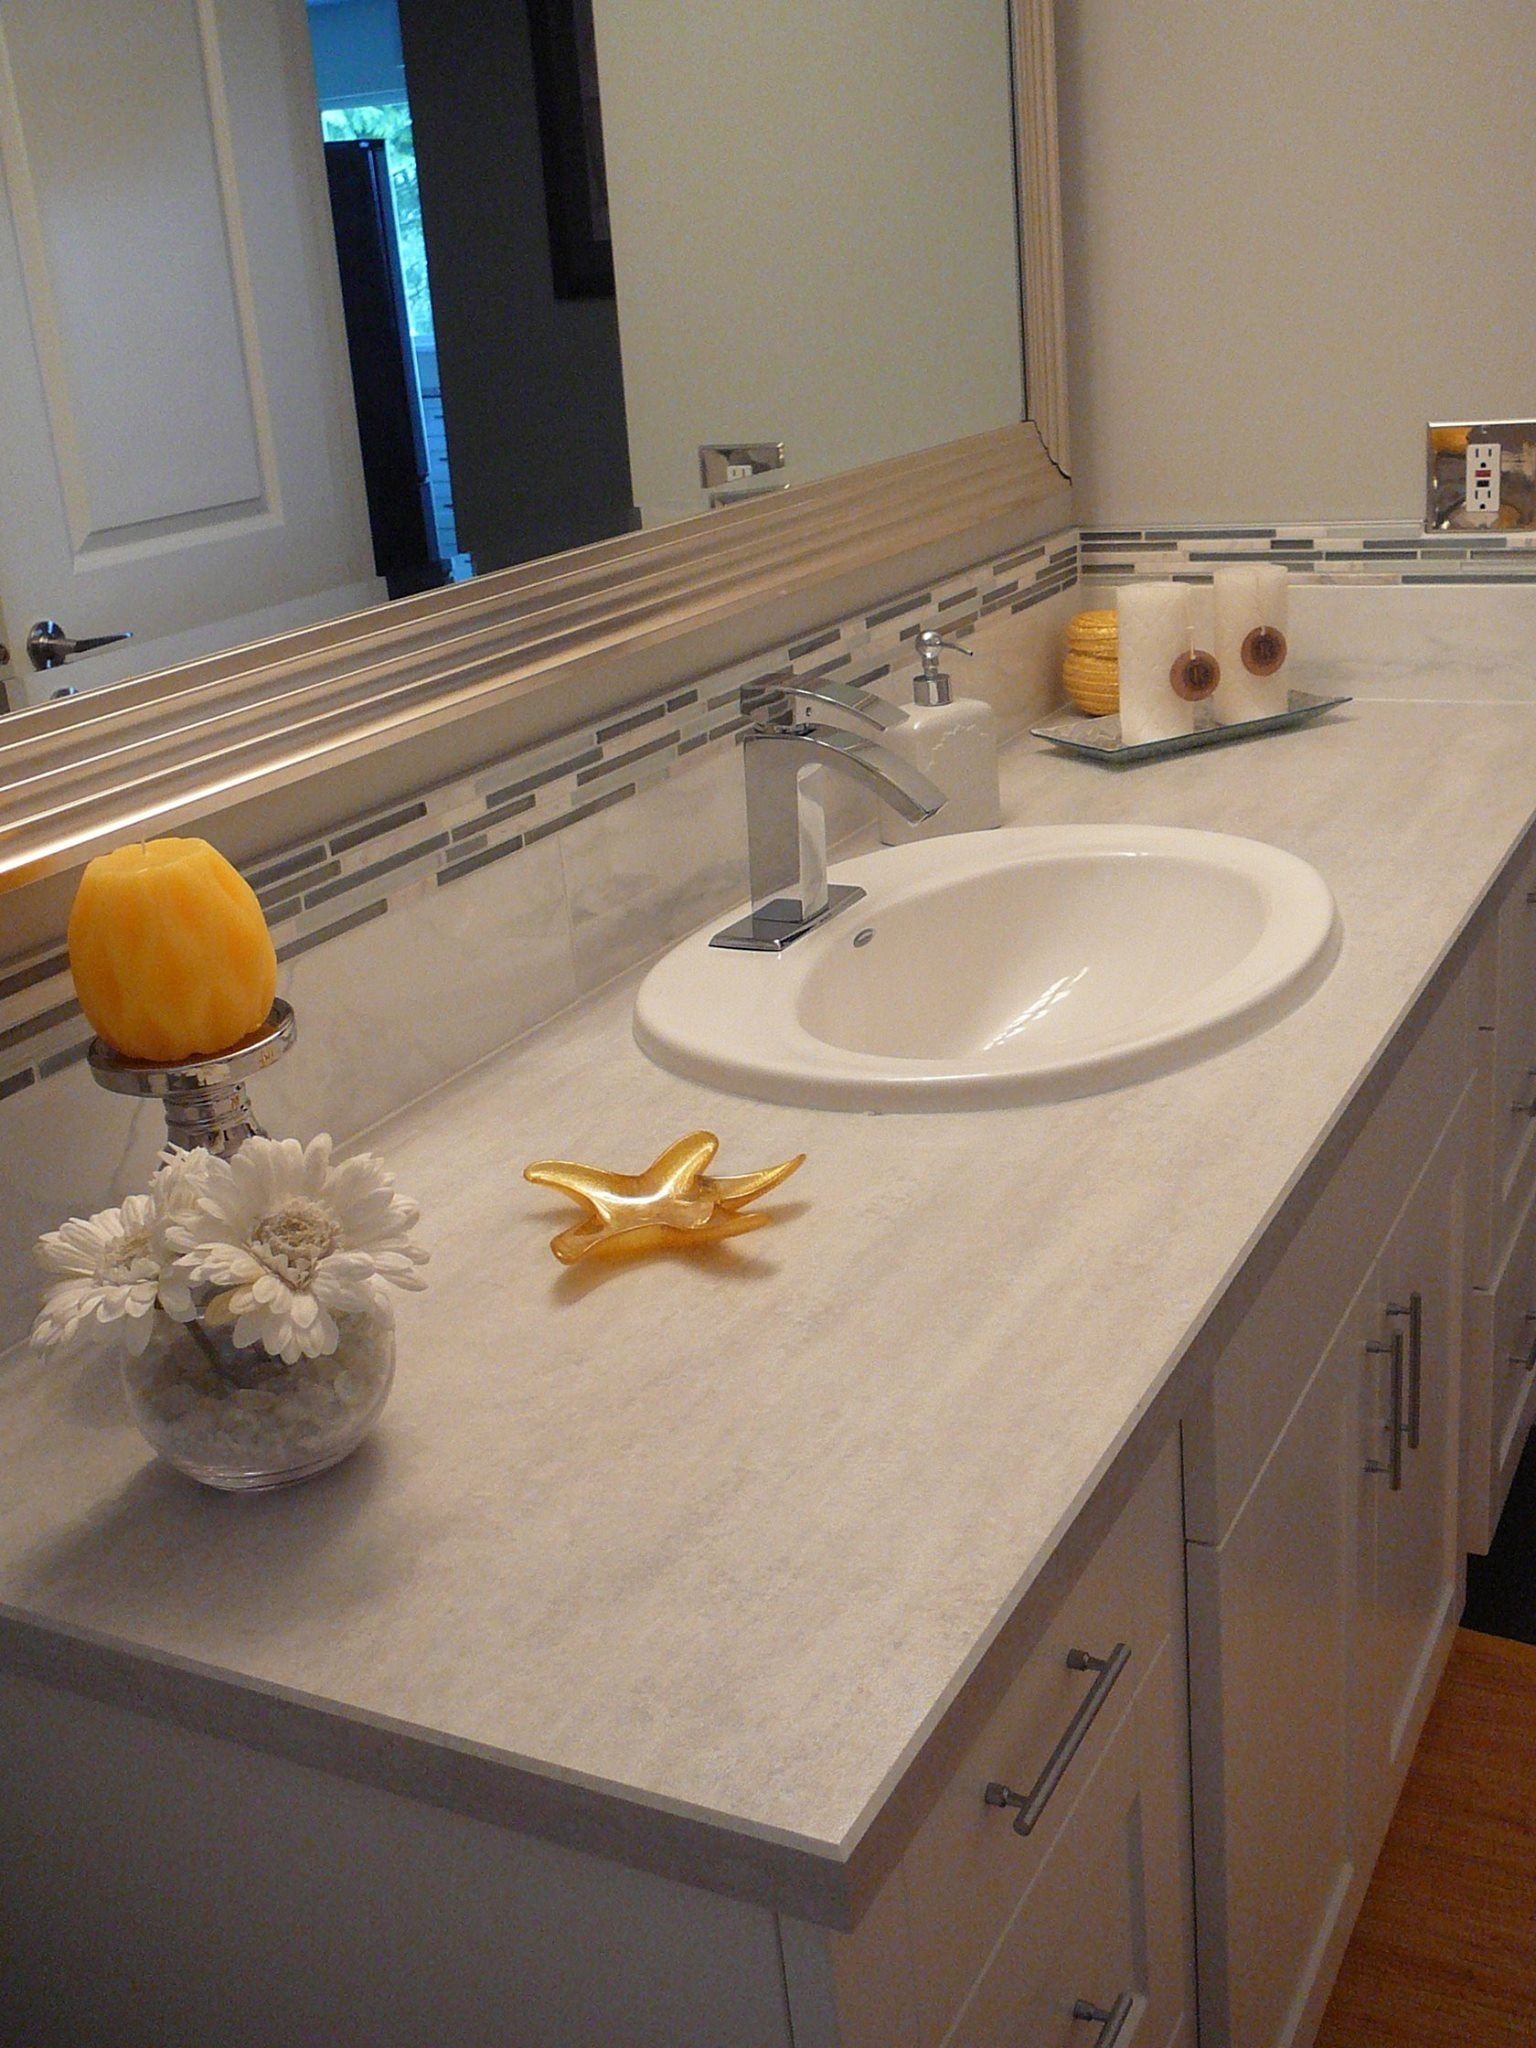 Bathroom Vanity Laminate Countertops - Home Sweet Home ...